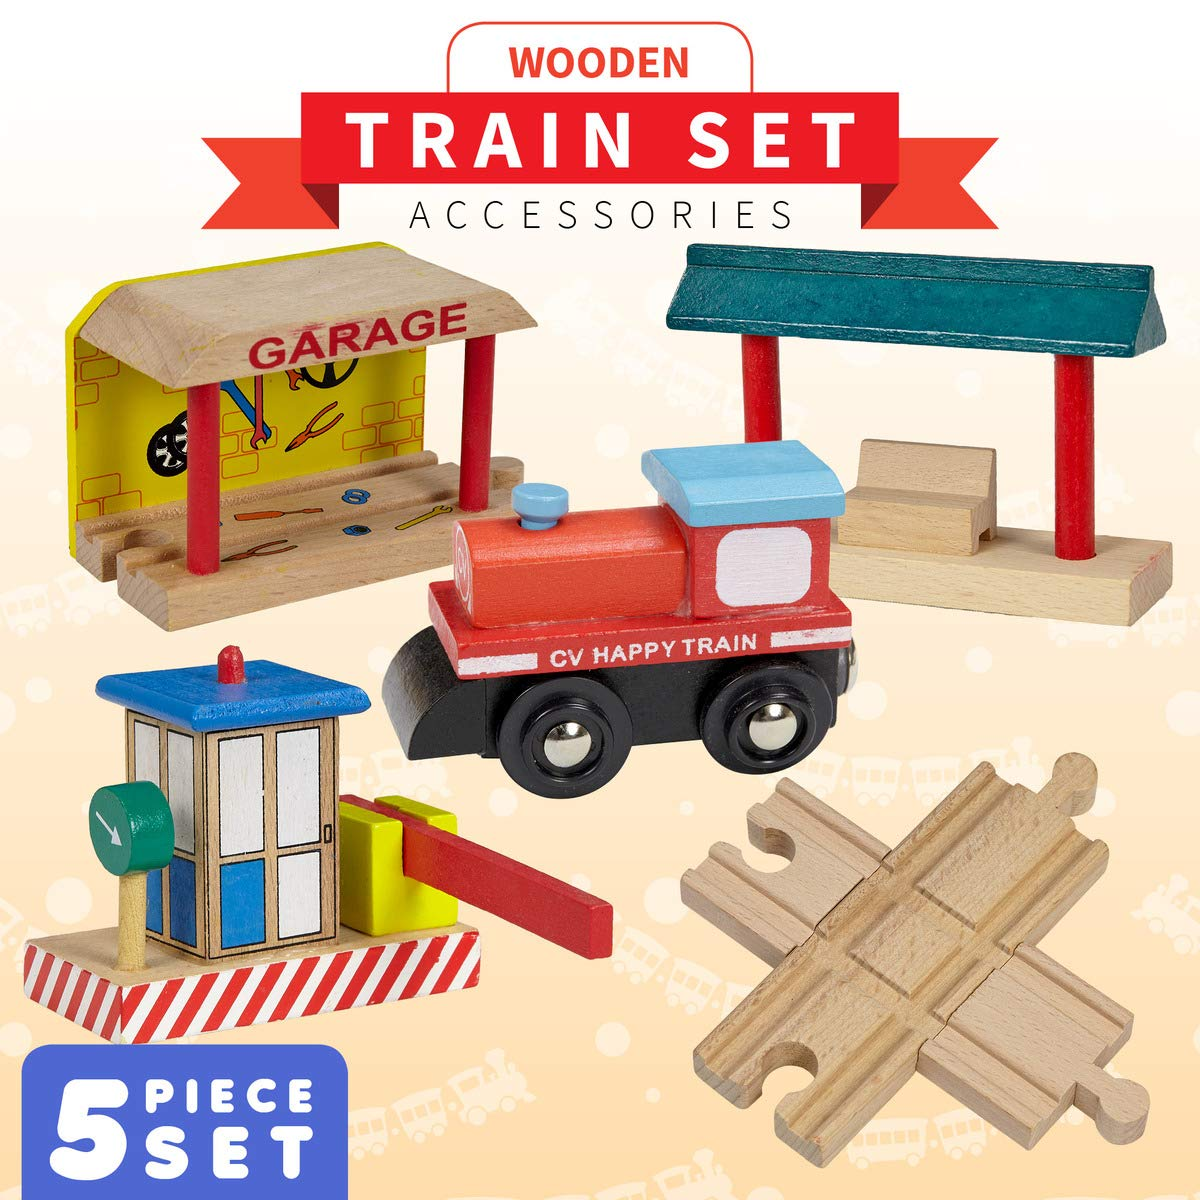 Dragon Drew Wooden Train Accessories Set Includes Train Car Garage Station Platform Toll And A 4 Way Cross Track Compatible With Brio Thomas